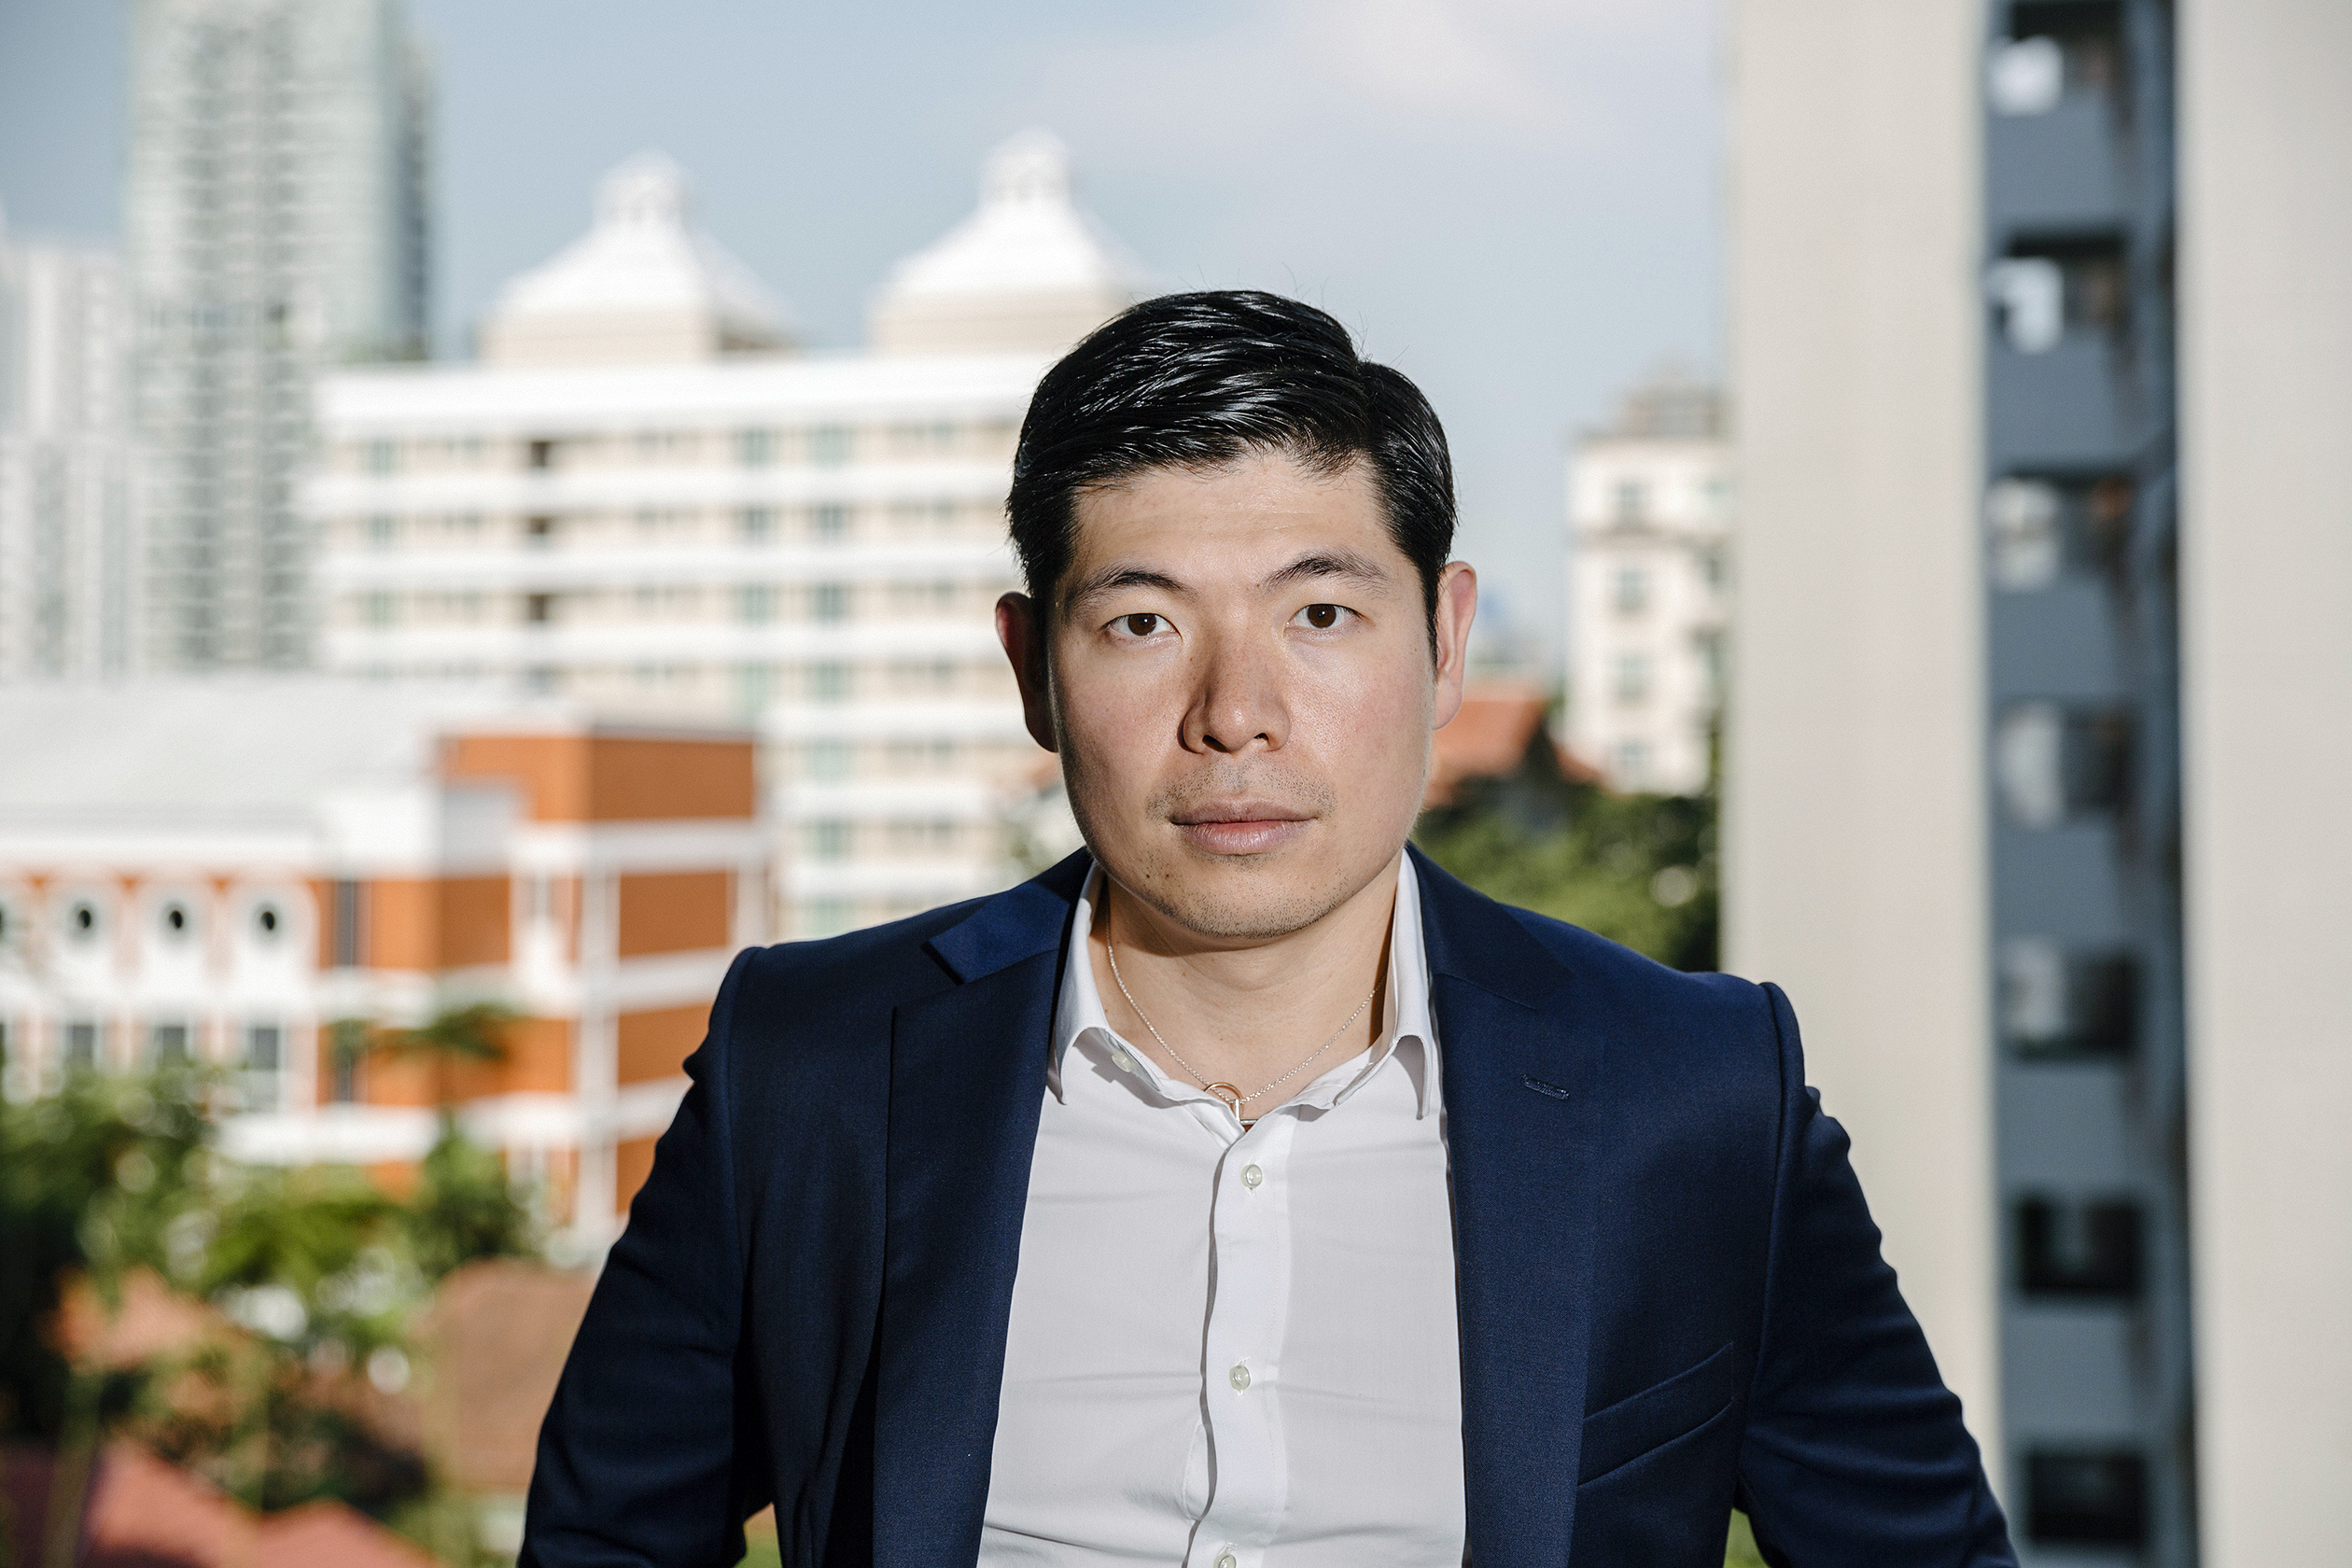 Anthony Tan, founder of GrabTaxi, stands on the balcony of his new home overlooking the cityscape of Singapore. The company is currently one of the big startup success stories of Southeast Asia. Tan founded the company in 2012 in Malaysia. Today the taxi app is available in 21 cities across the region, and has raised a total of US$340 million in funding.